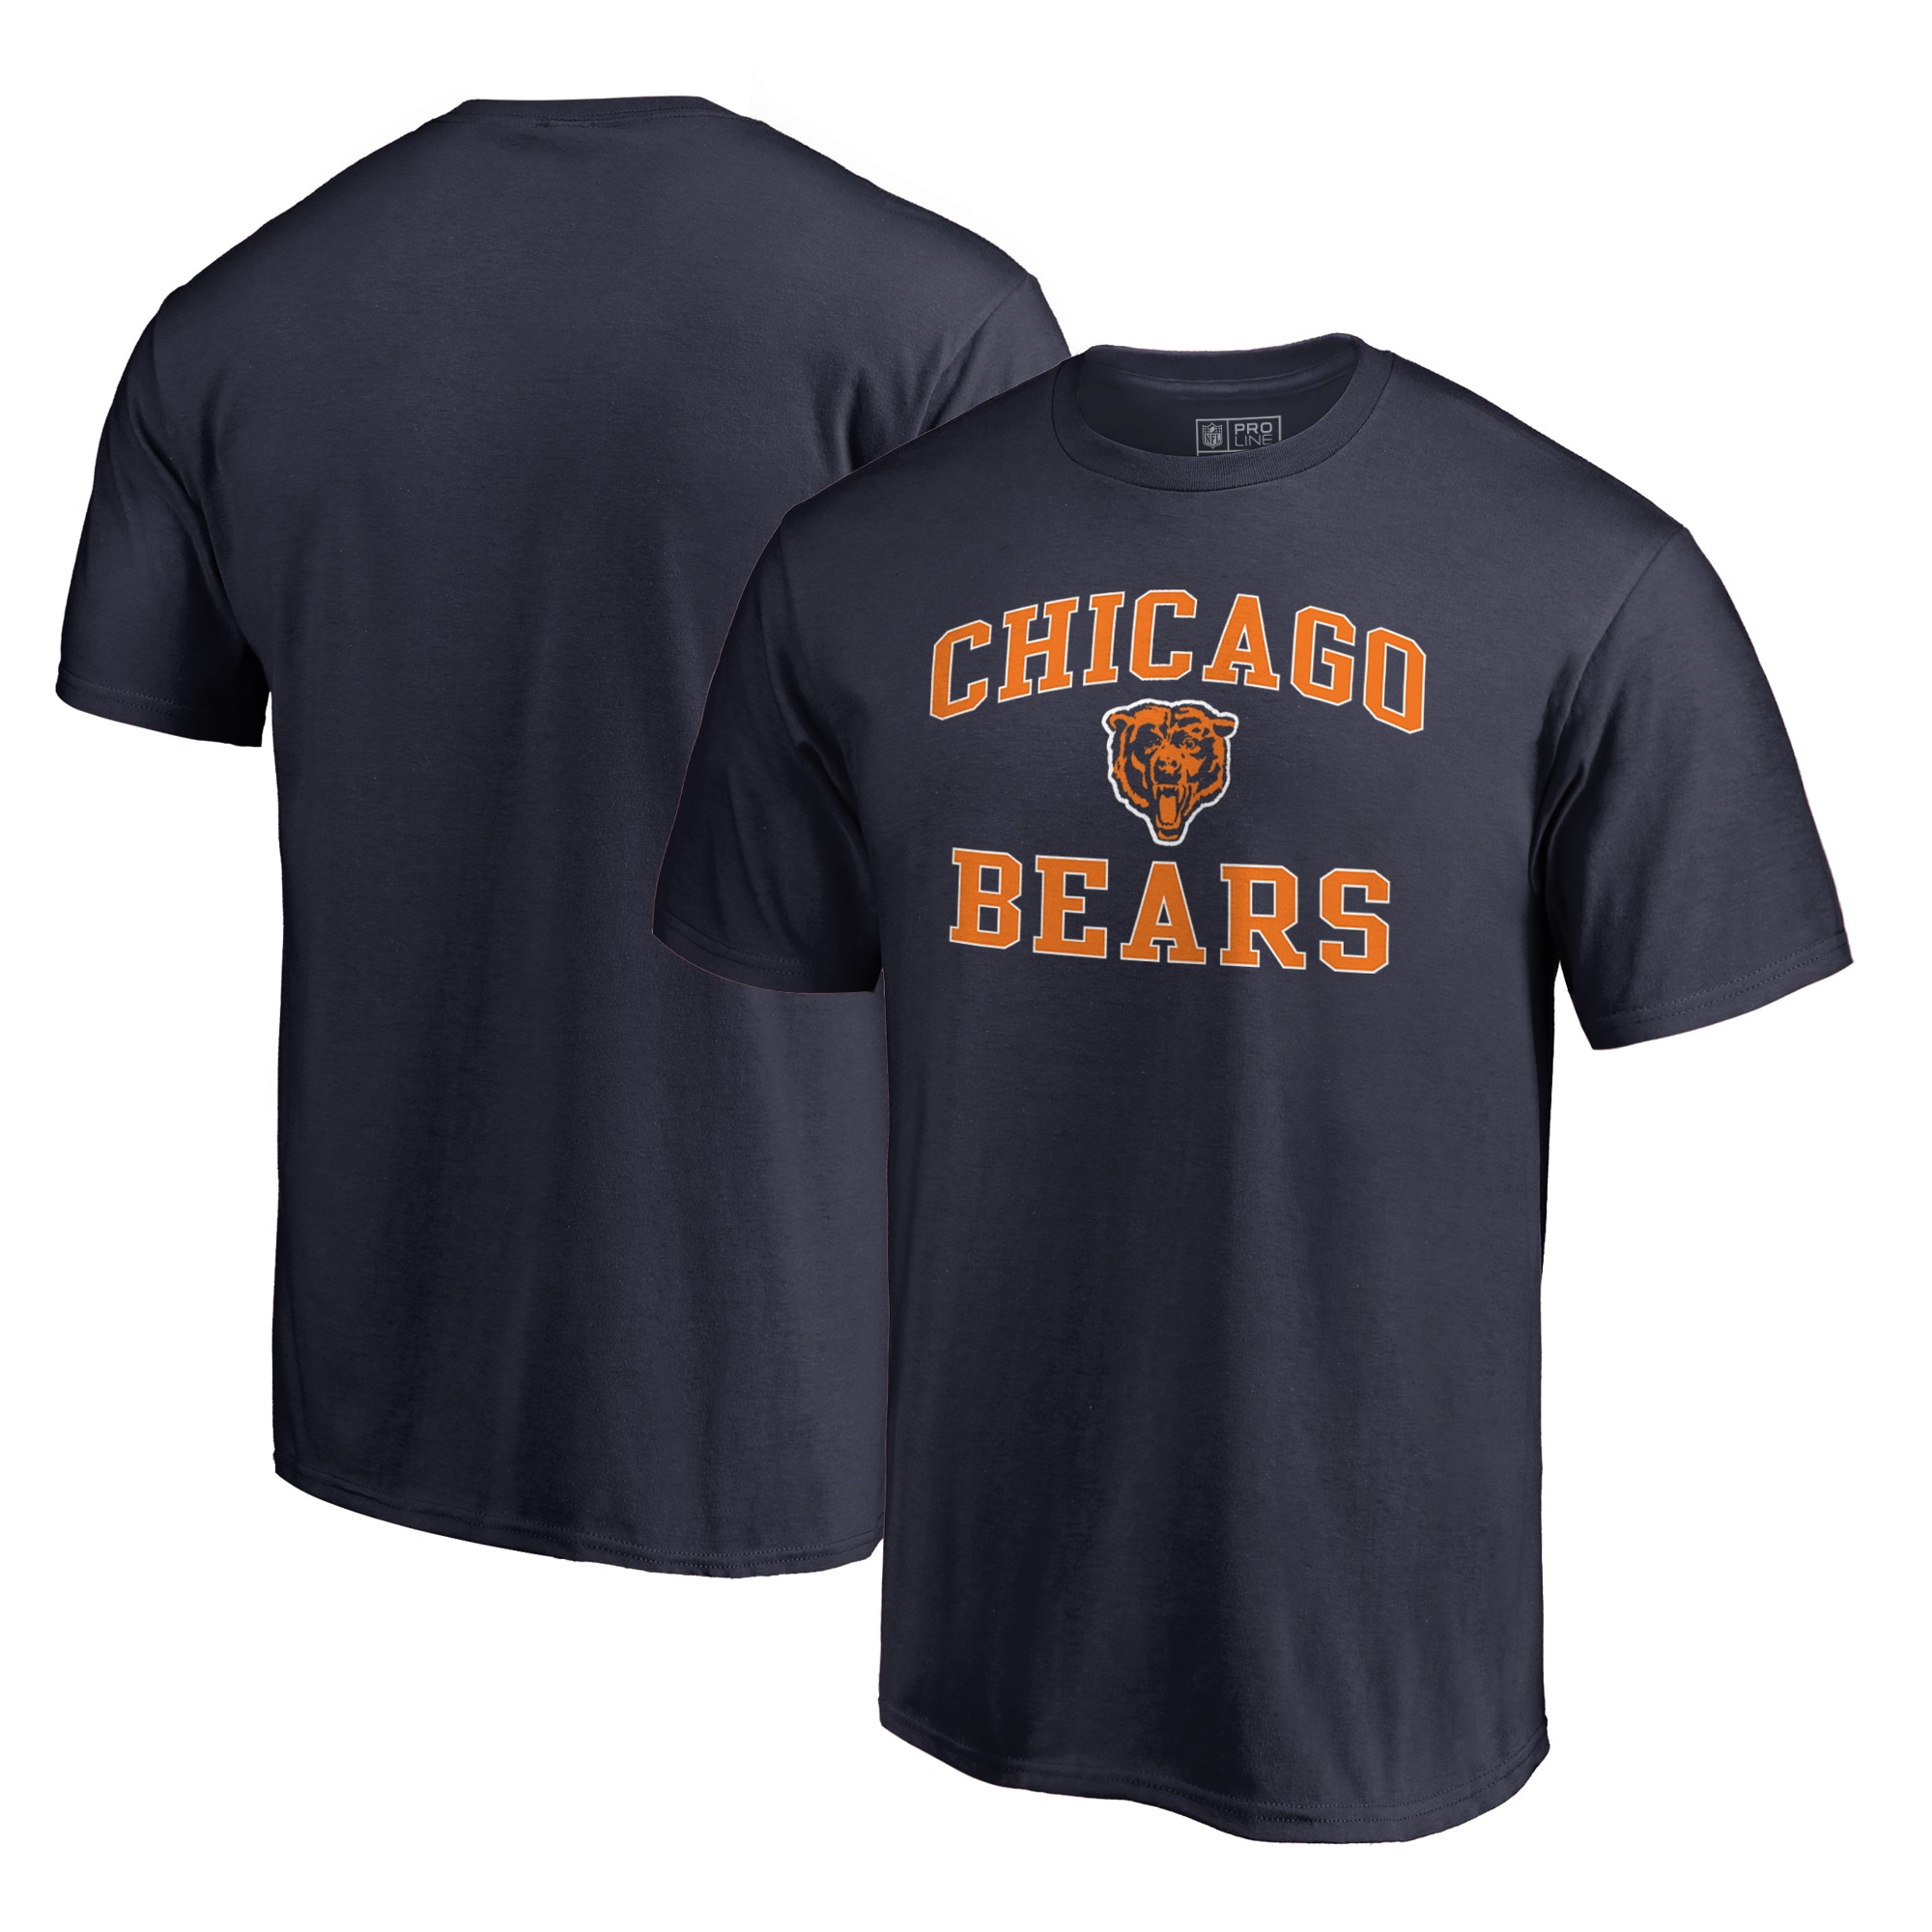 Chicago Bears NFL Pro Line by Fanatics Branded Vintage Collection Victory Arch T-Shirt - Navy